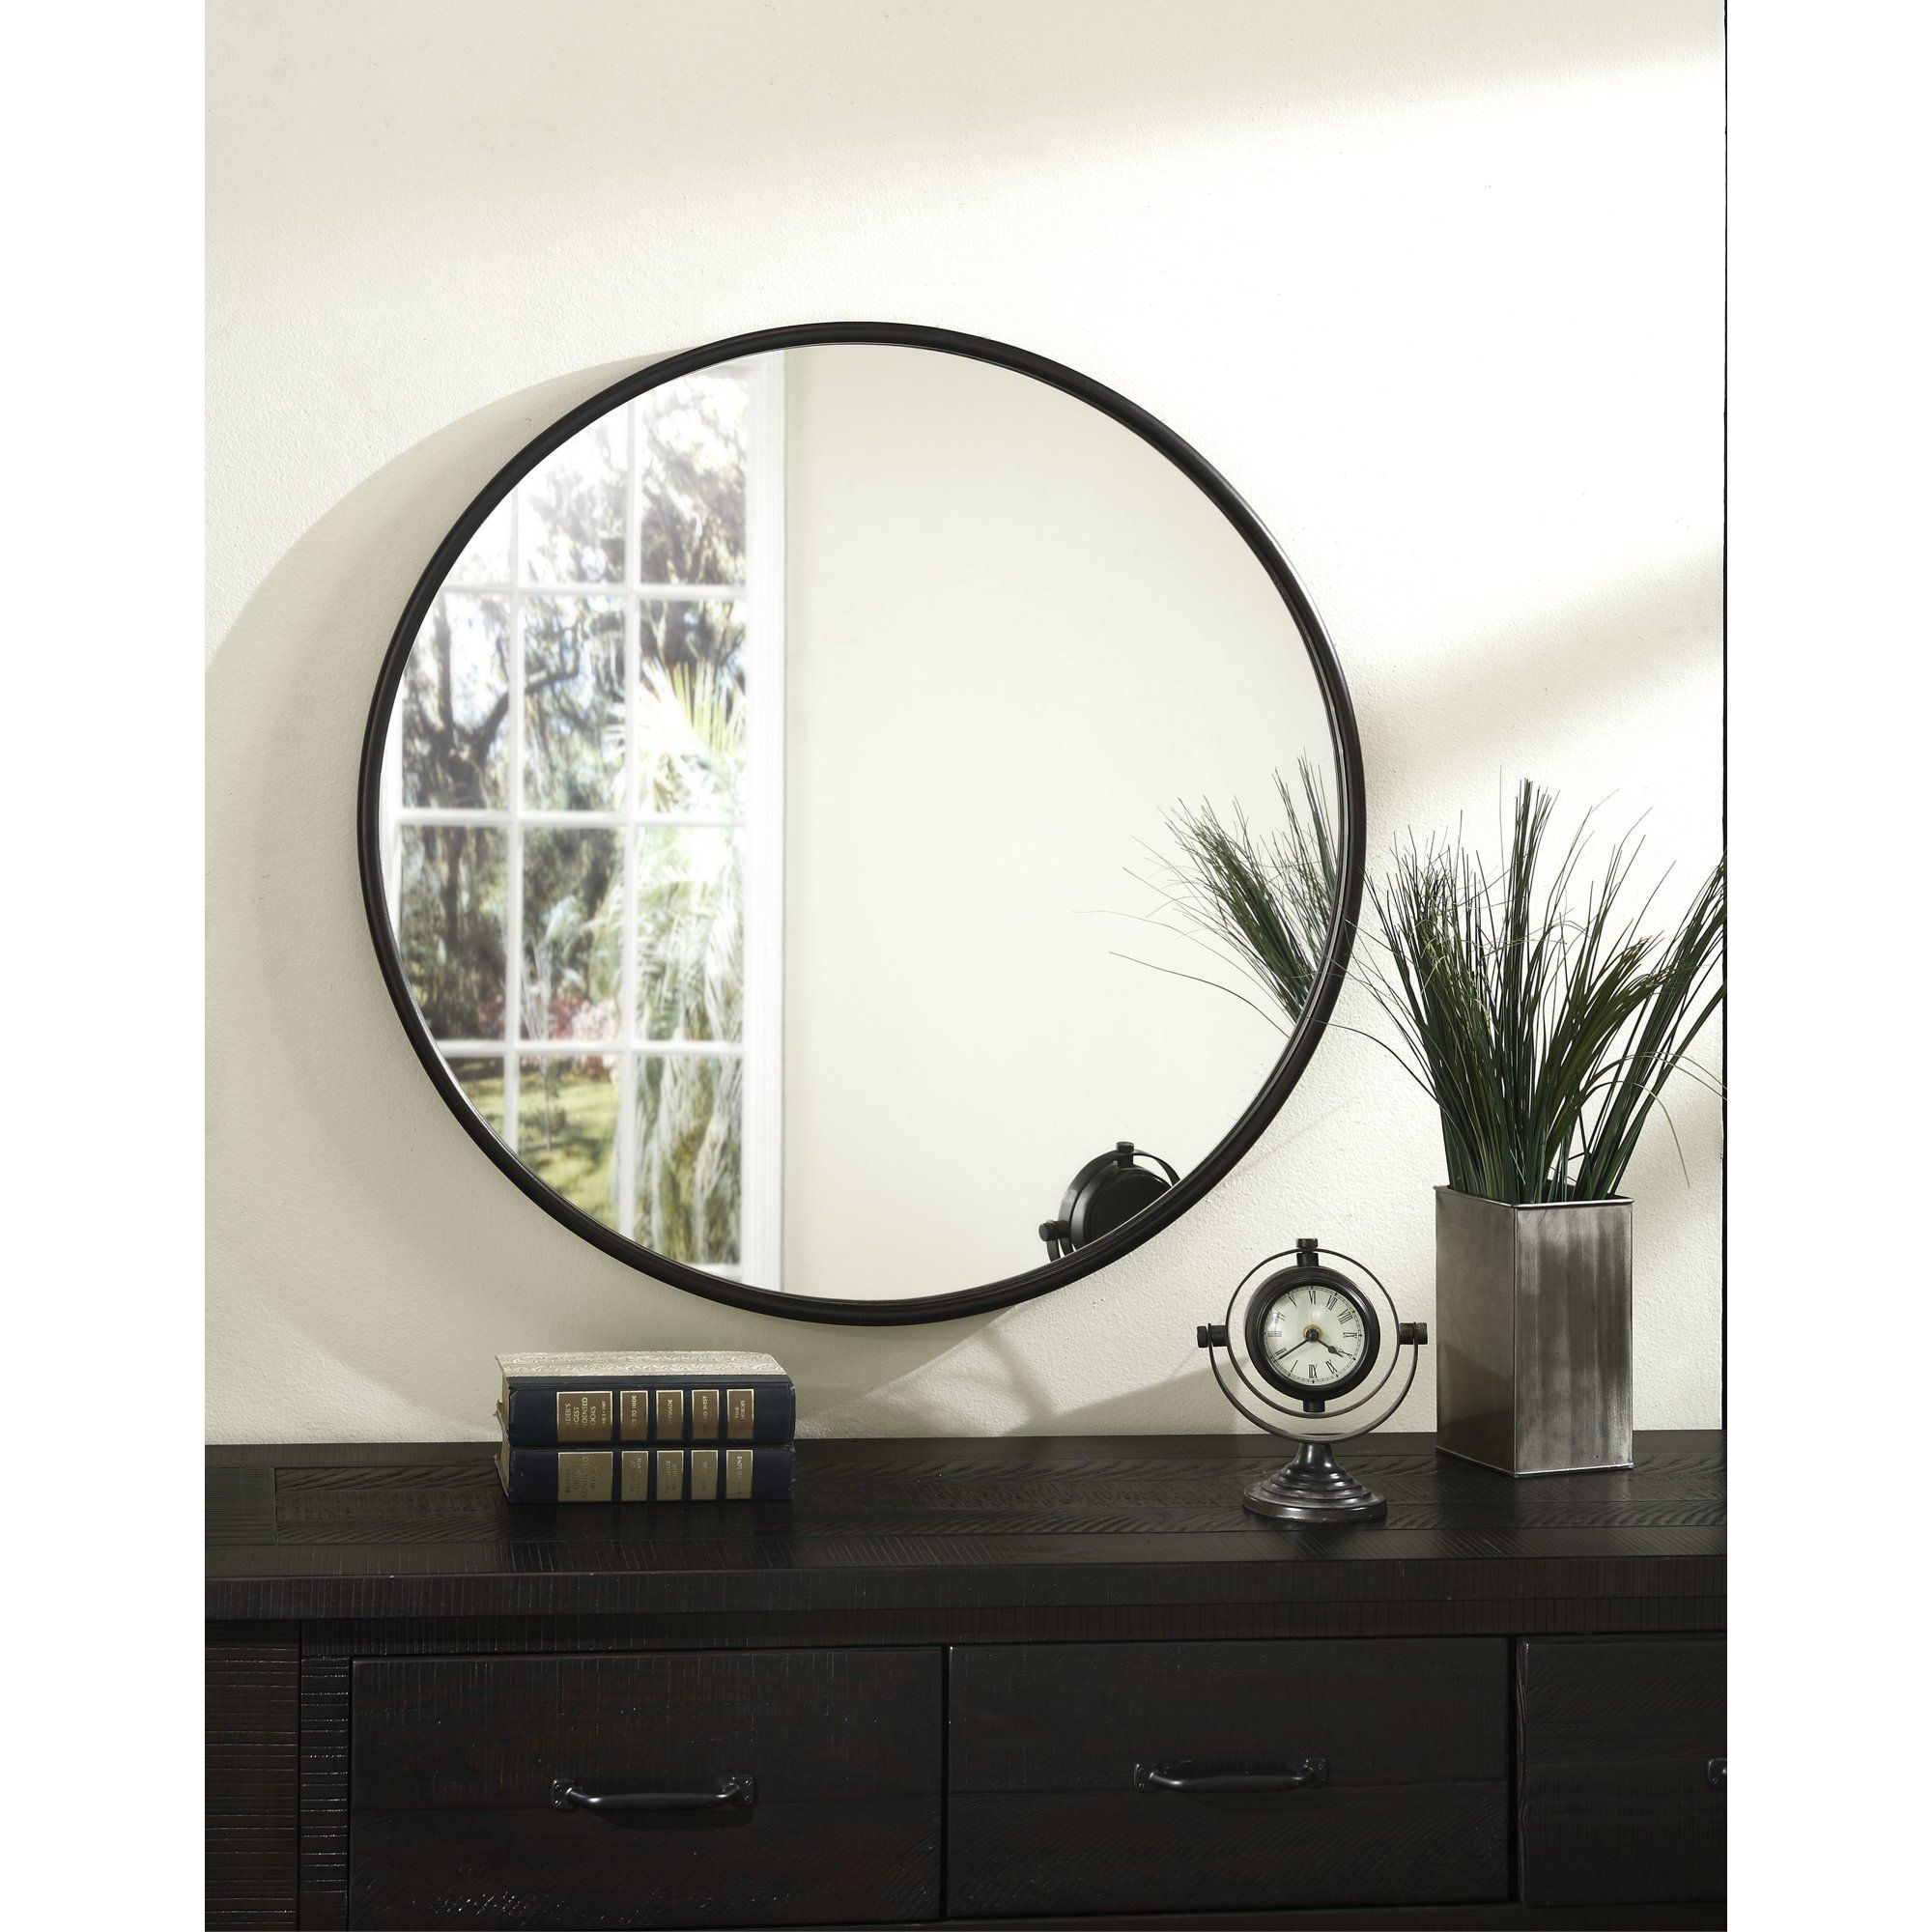 Martin Svensson Home 36 Framed Round Wall Mirror Oil Rubbed Bronze Walmart Com In 2021 Round Wall Mirror Framed Mirror Wall Bronze Mirror